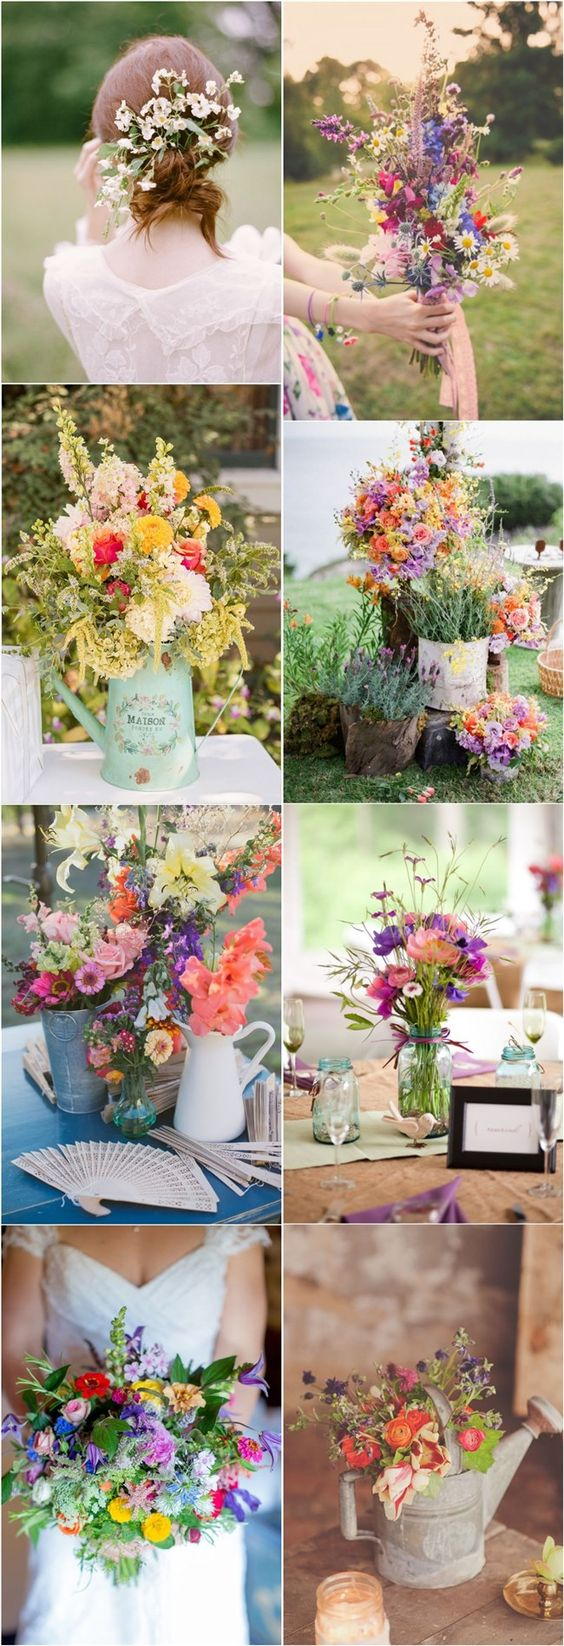 50 + Wildflowers Wedding Ideas for Rustic / Boho Weddings | http://www.deerpearlflowers.com/wildflowers-wedding-ideas-for-rustic-boho-weddings/: